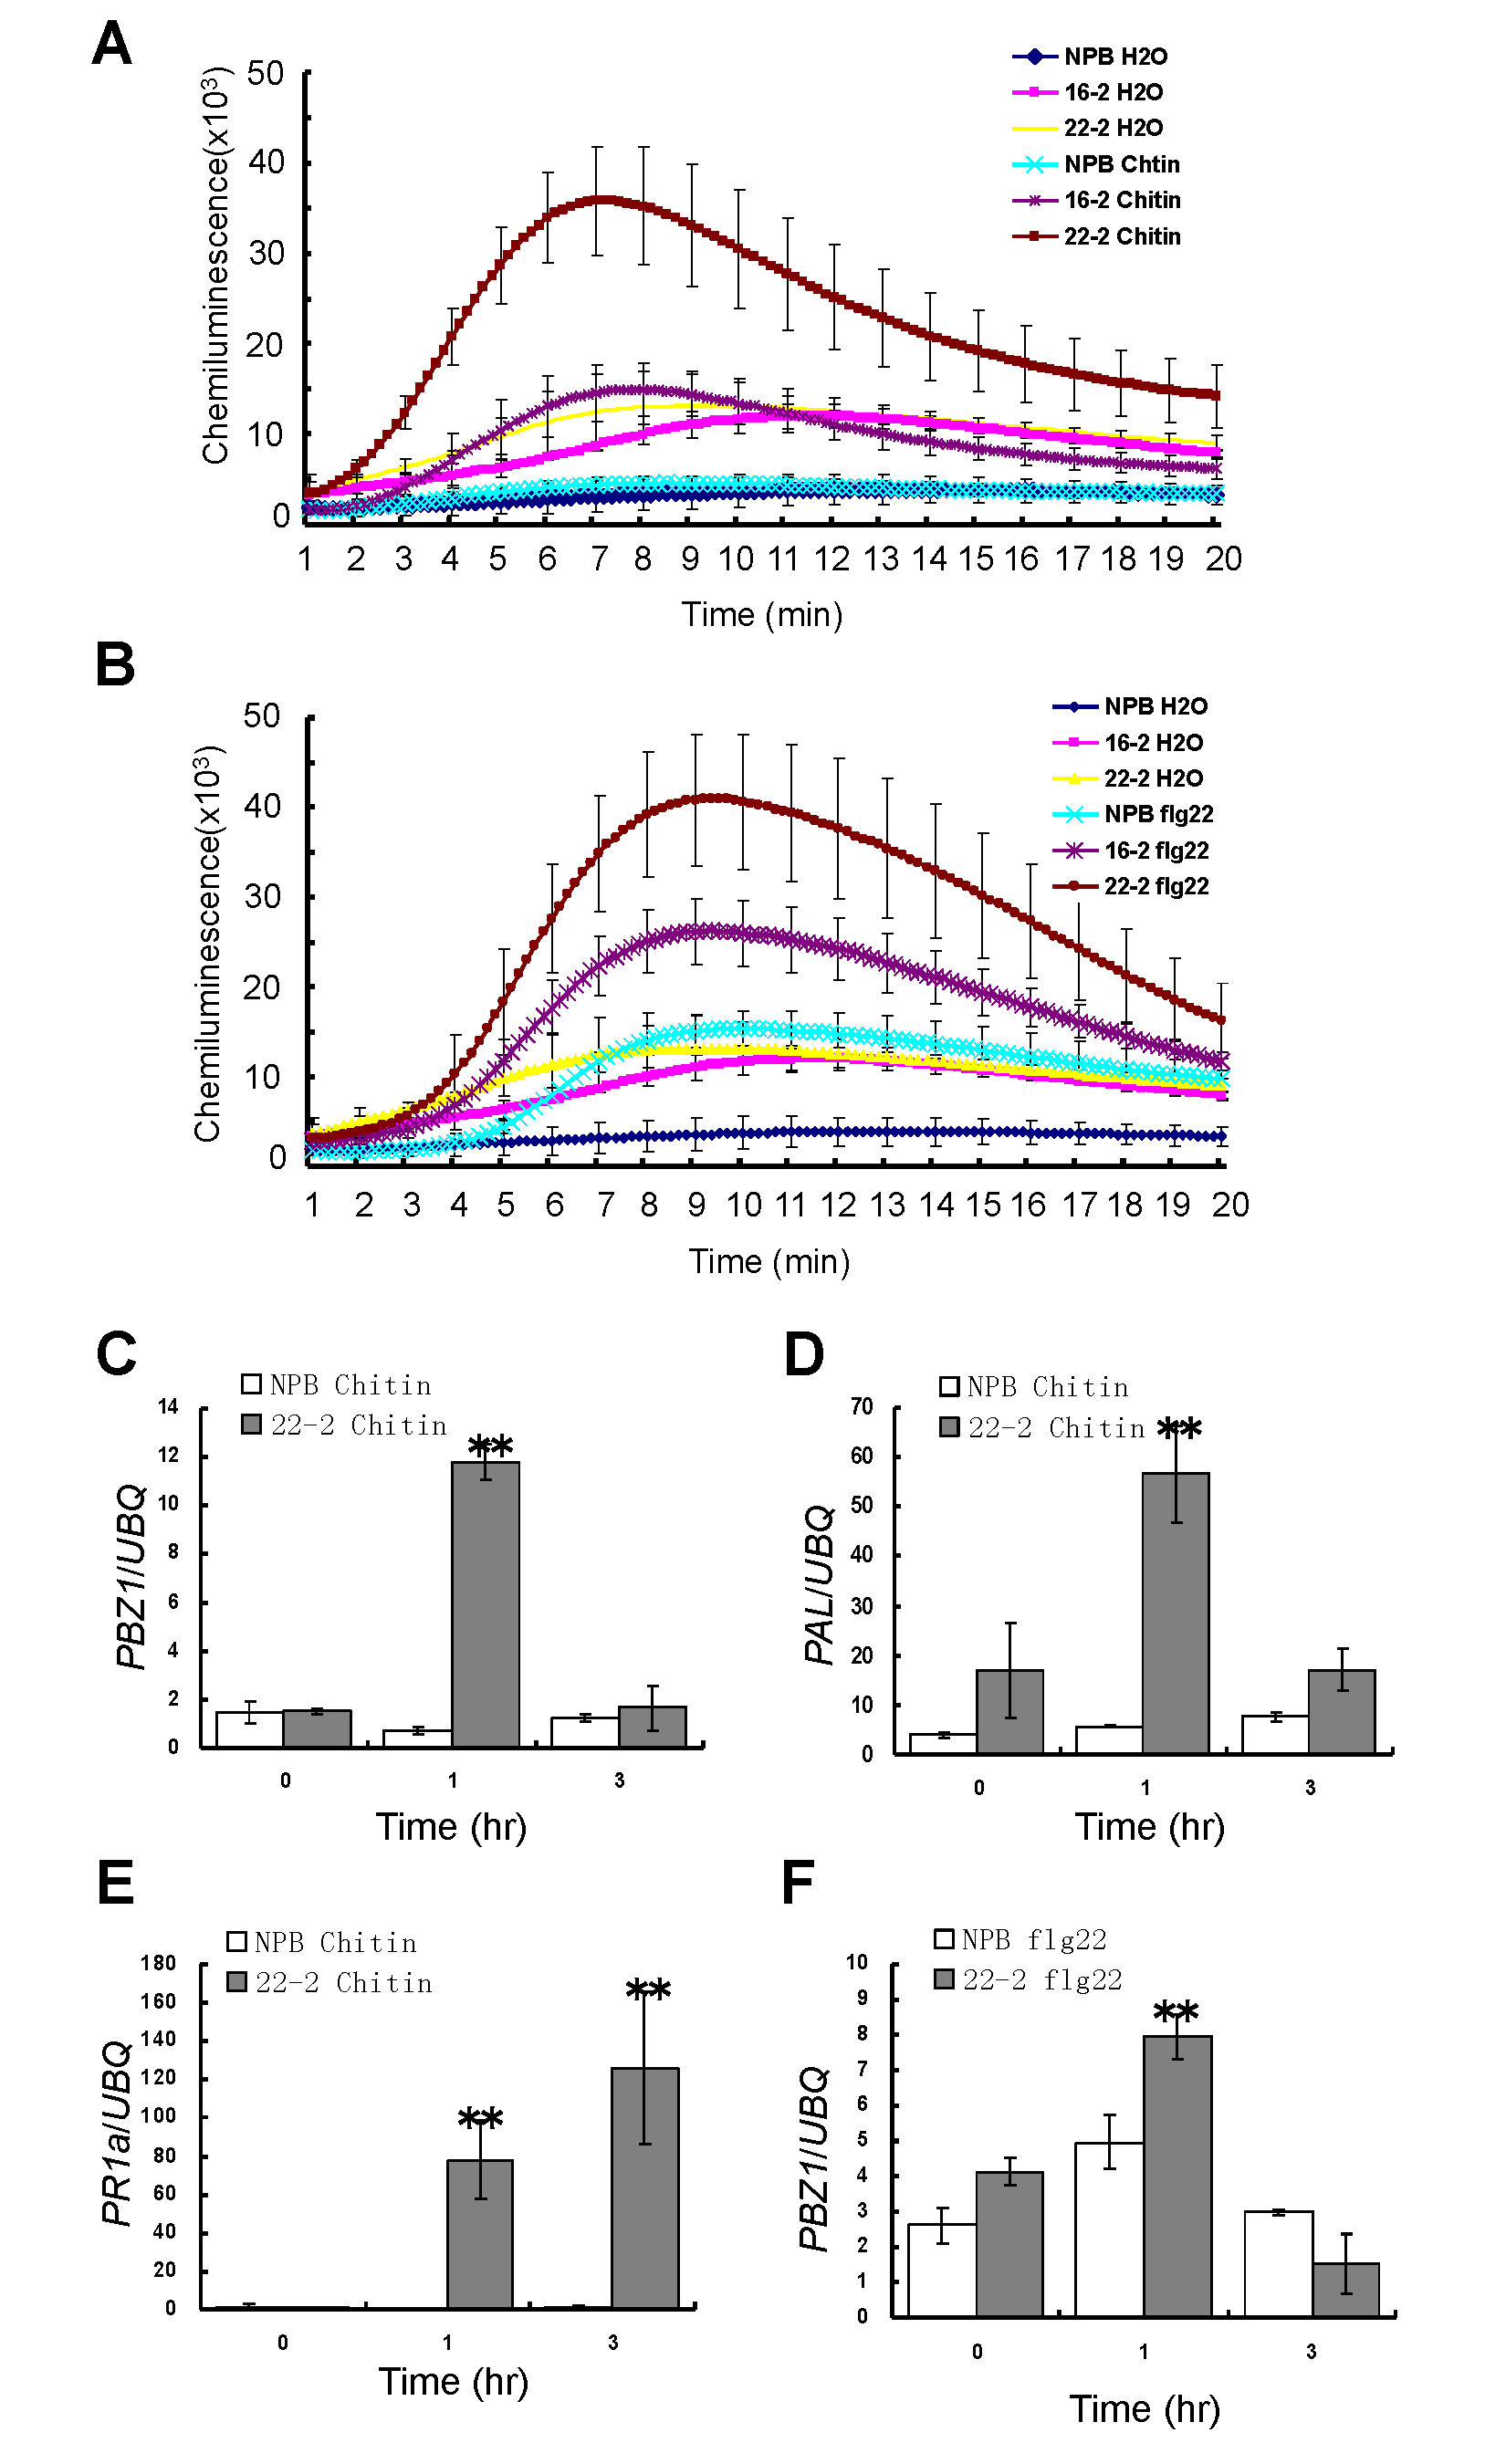 ROS generation and defense-related gene expression of the <i>Spin6</i> RNAi lines after chitin and flg22 treatments.